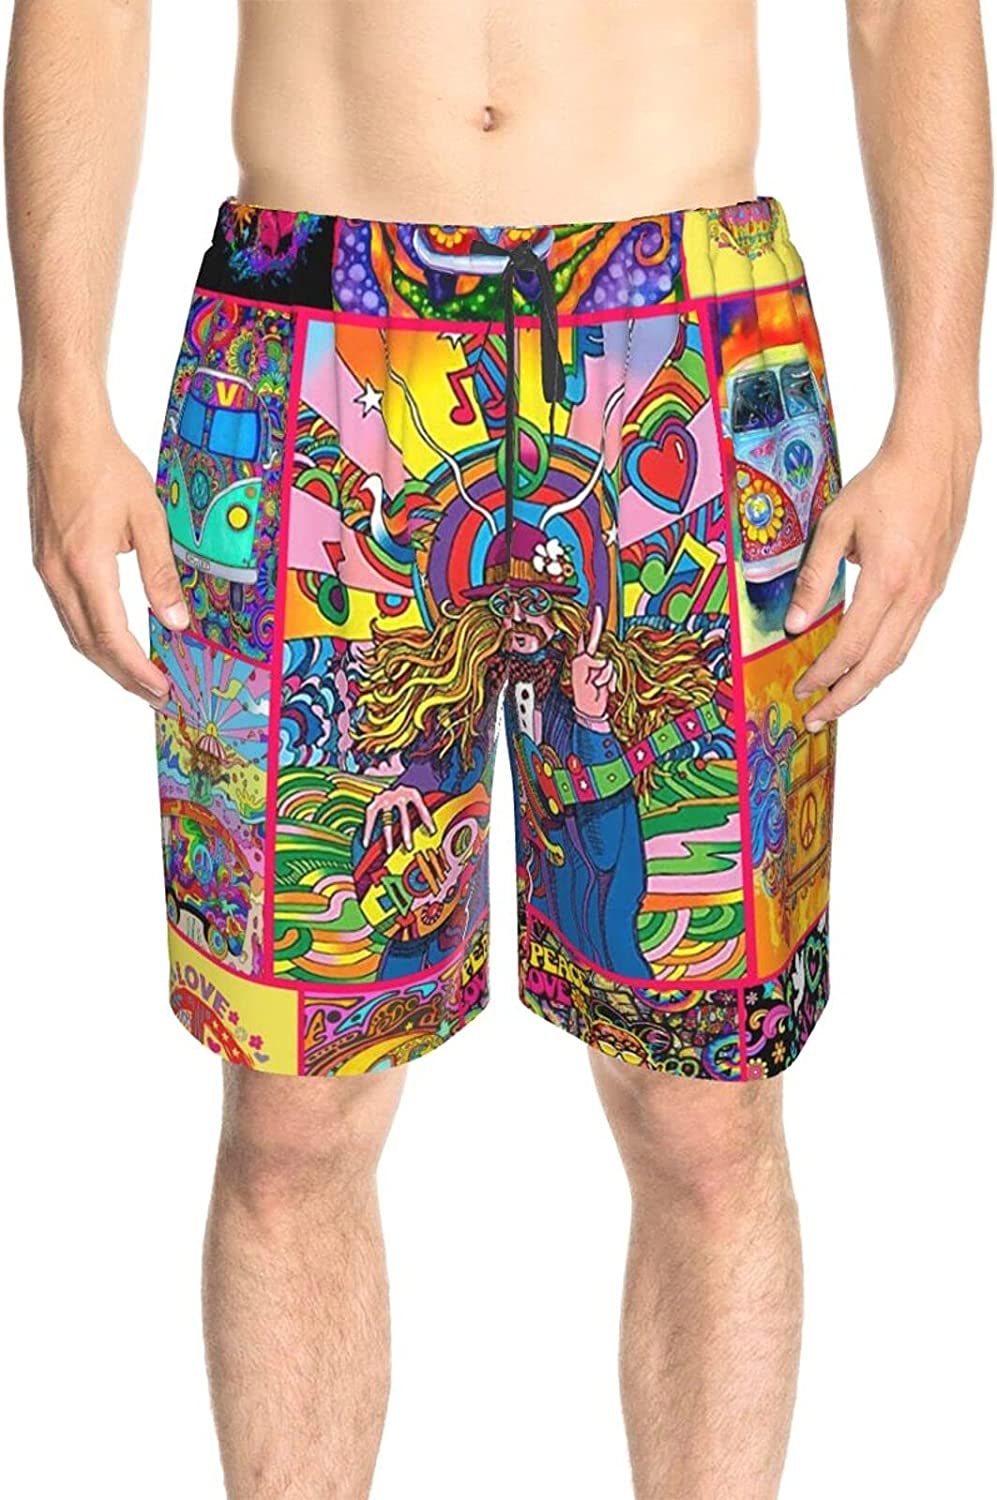 Men's Swim Trunks Colorful Peace and Love World Bathing Suit Boardshorts Quick Dry Comfy Board Shorts Swimwear